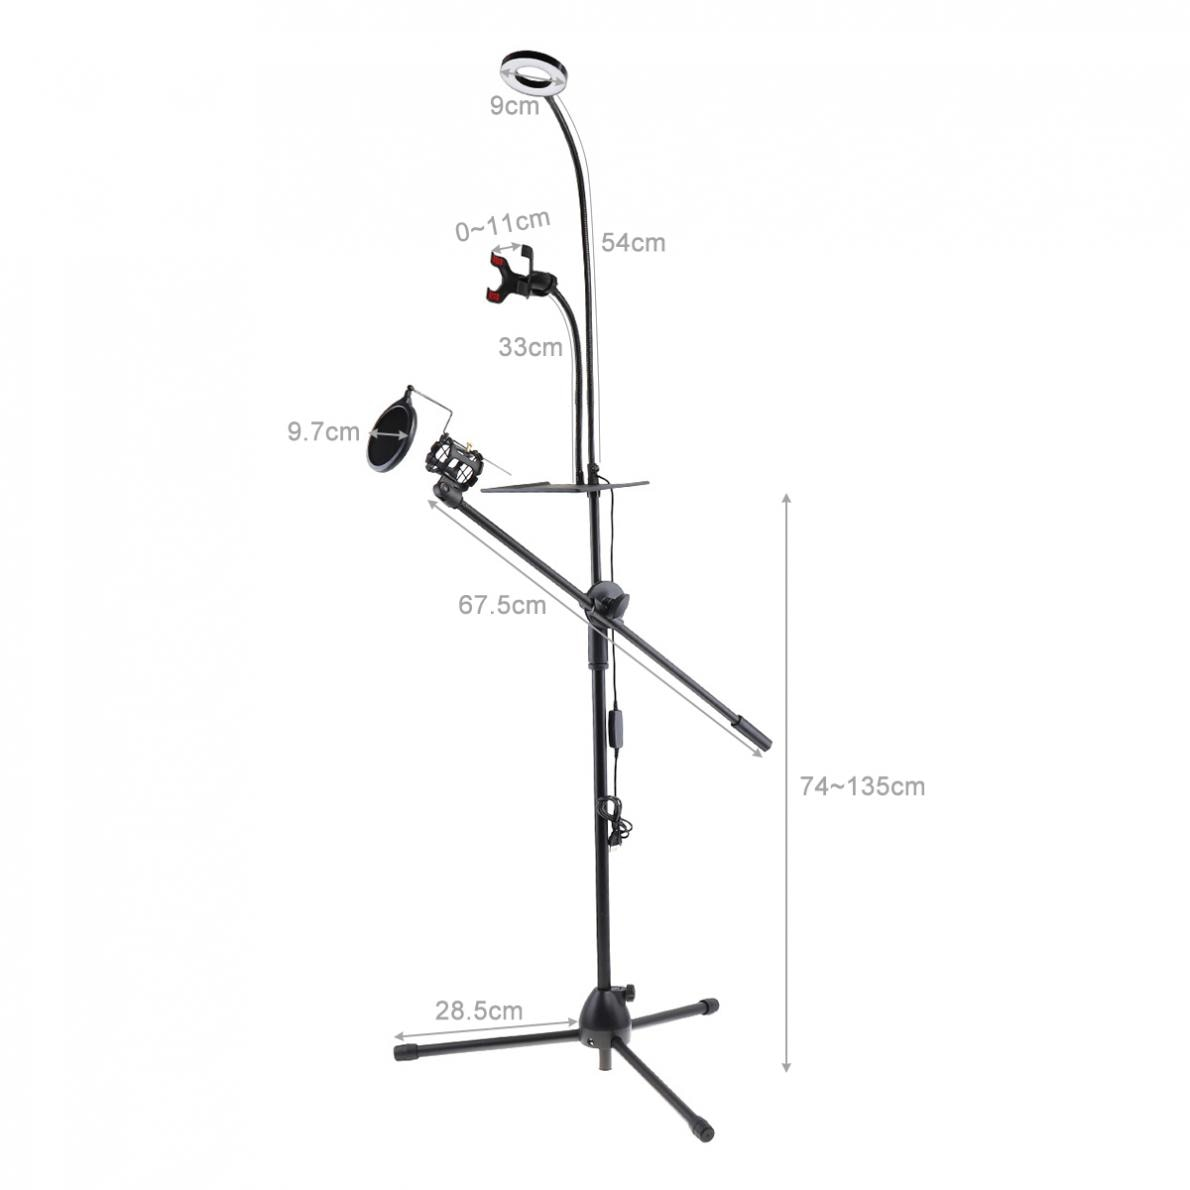 Live Broadcast Gooseneck Cell Phone Holder Bracket Tripod with Selfie Ring Light and Microphone Stands Pop Filter for Video enlarge